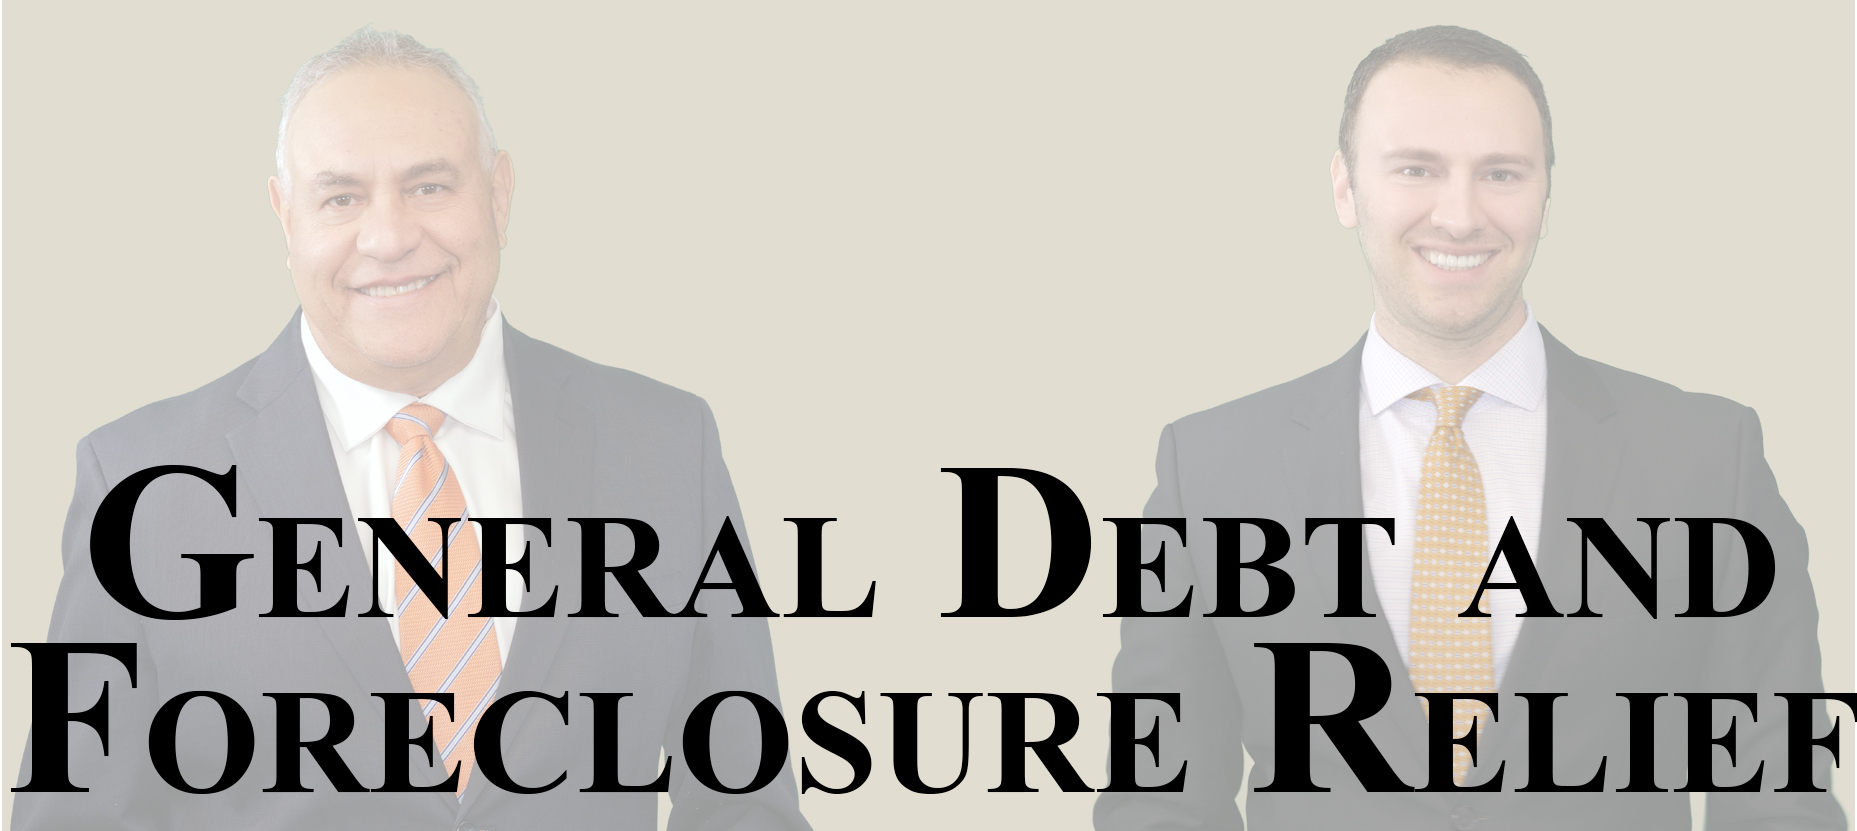 General debt and foreclosure relieff